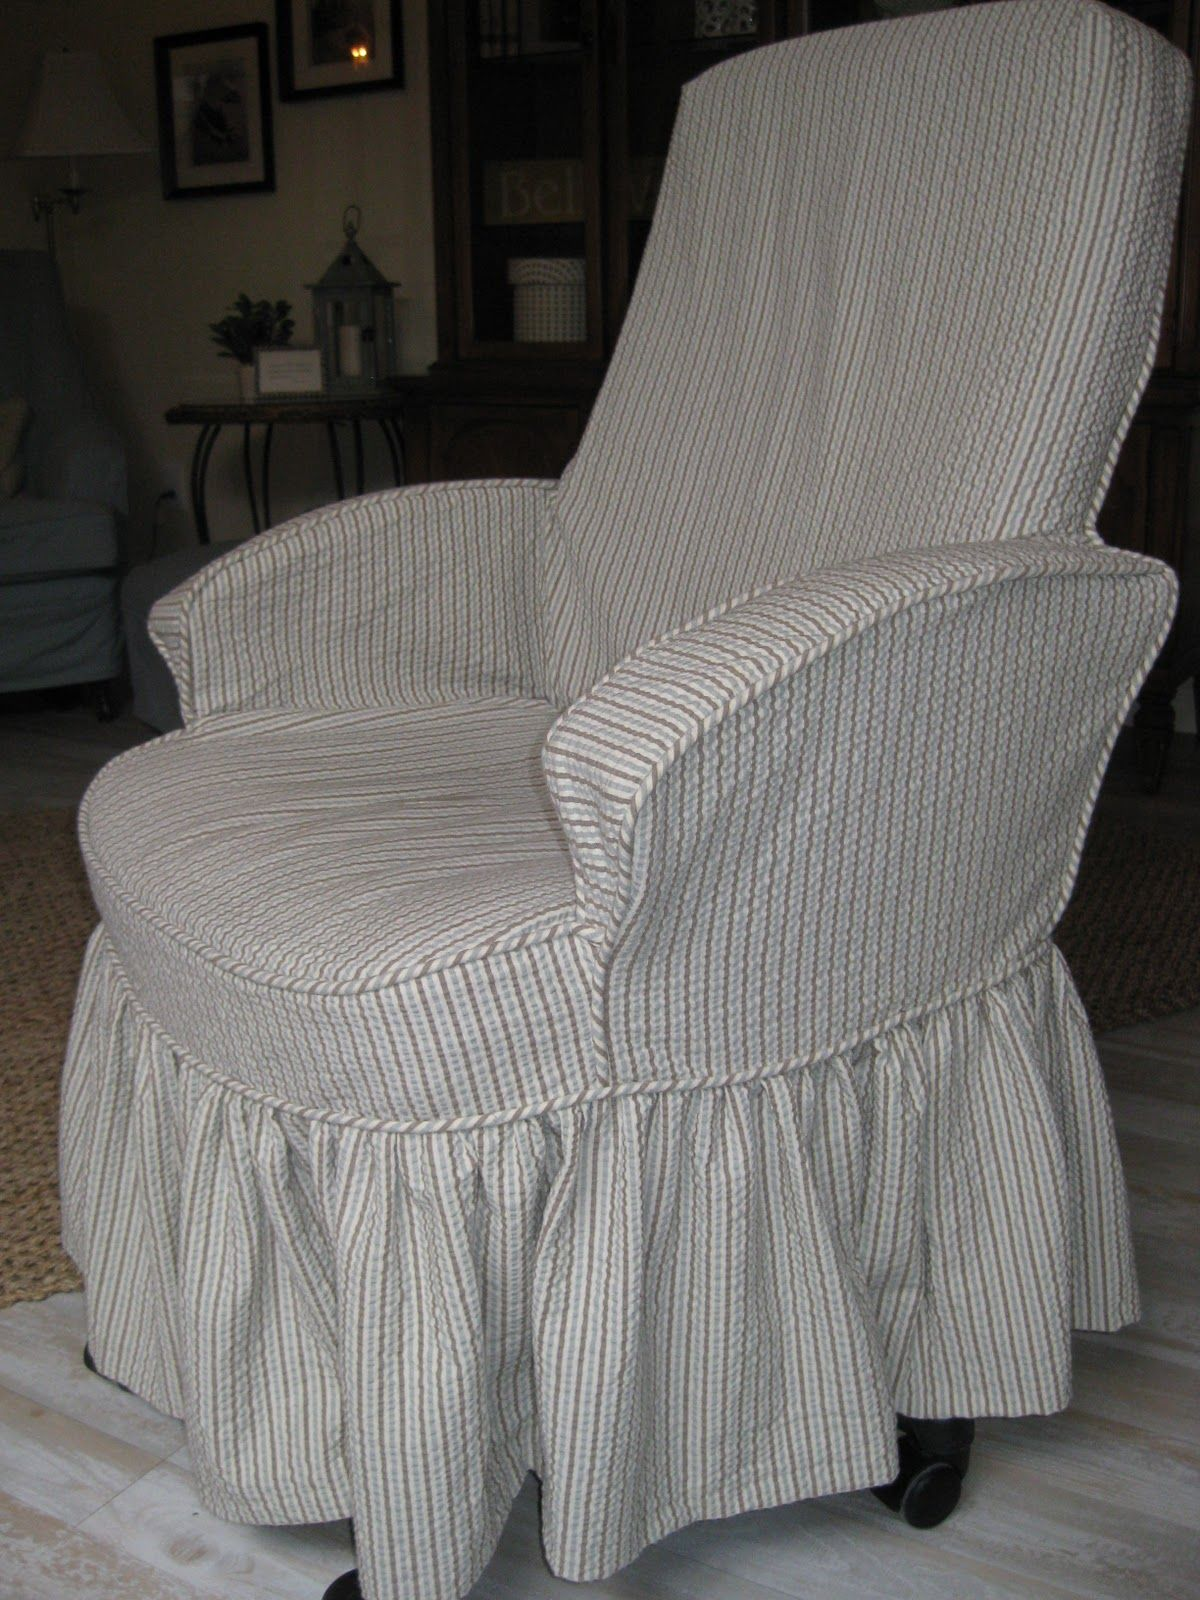 Office Chair slipcovers Custom Slipcovers by Shelley